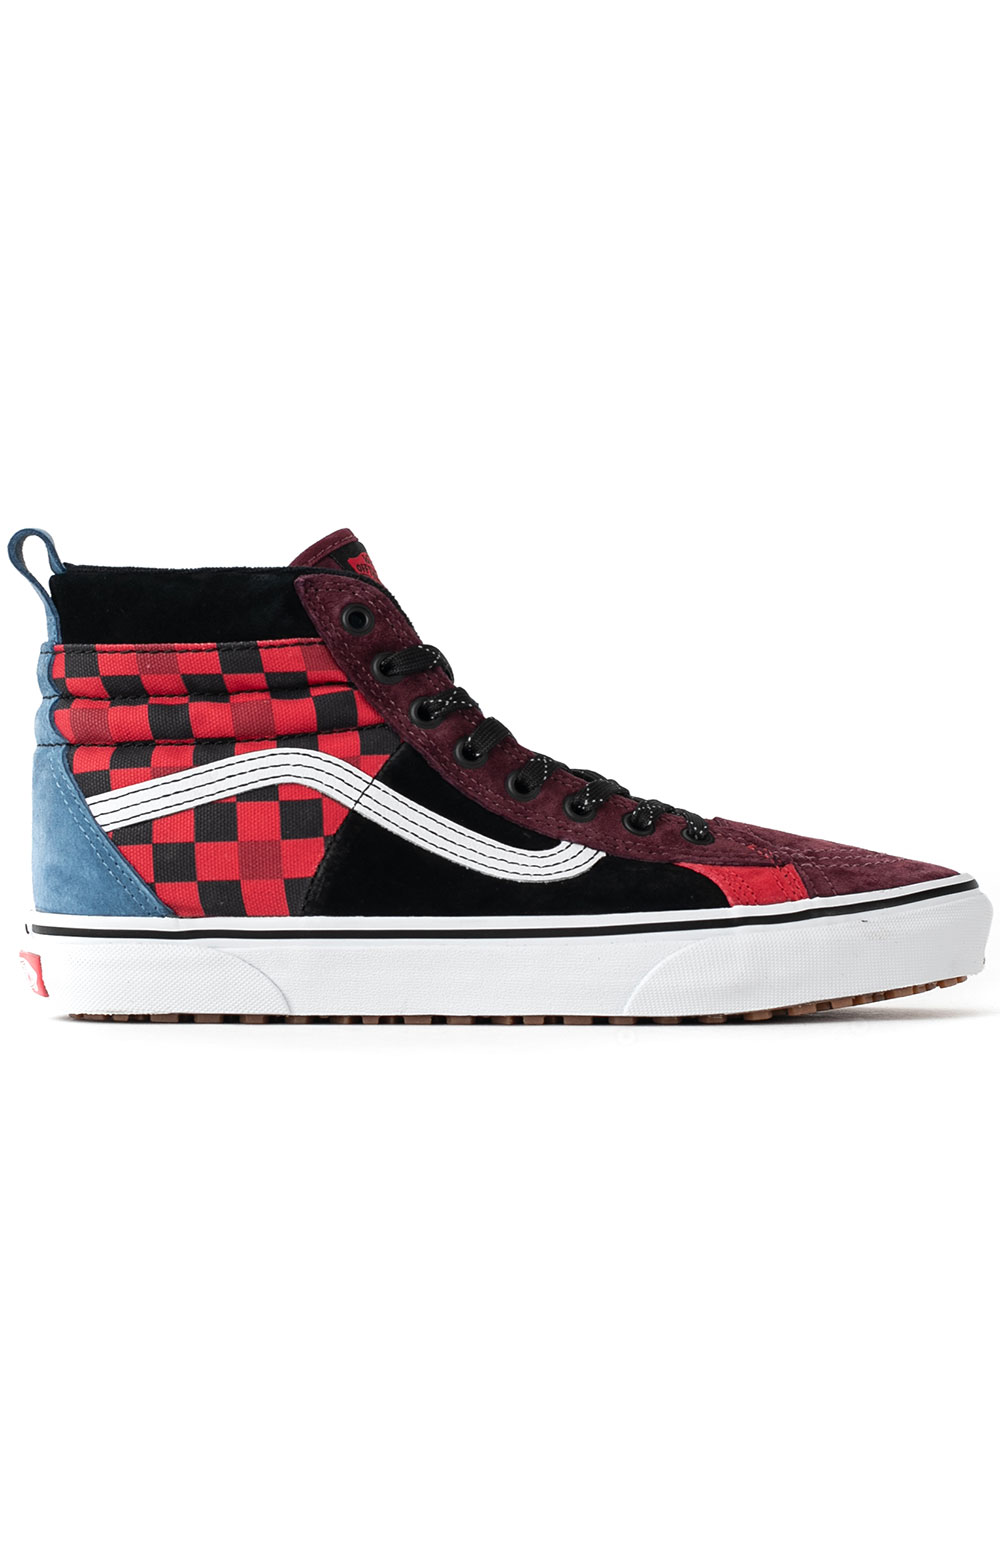 (DQ523A) Sk8-Hi 48 MTE DX Shoes - Multi/Red